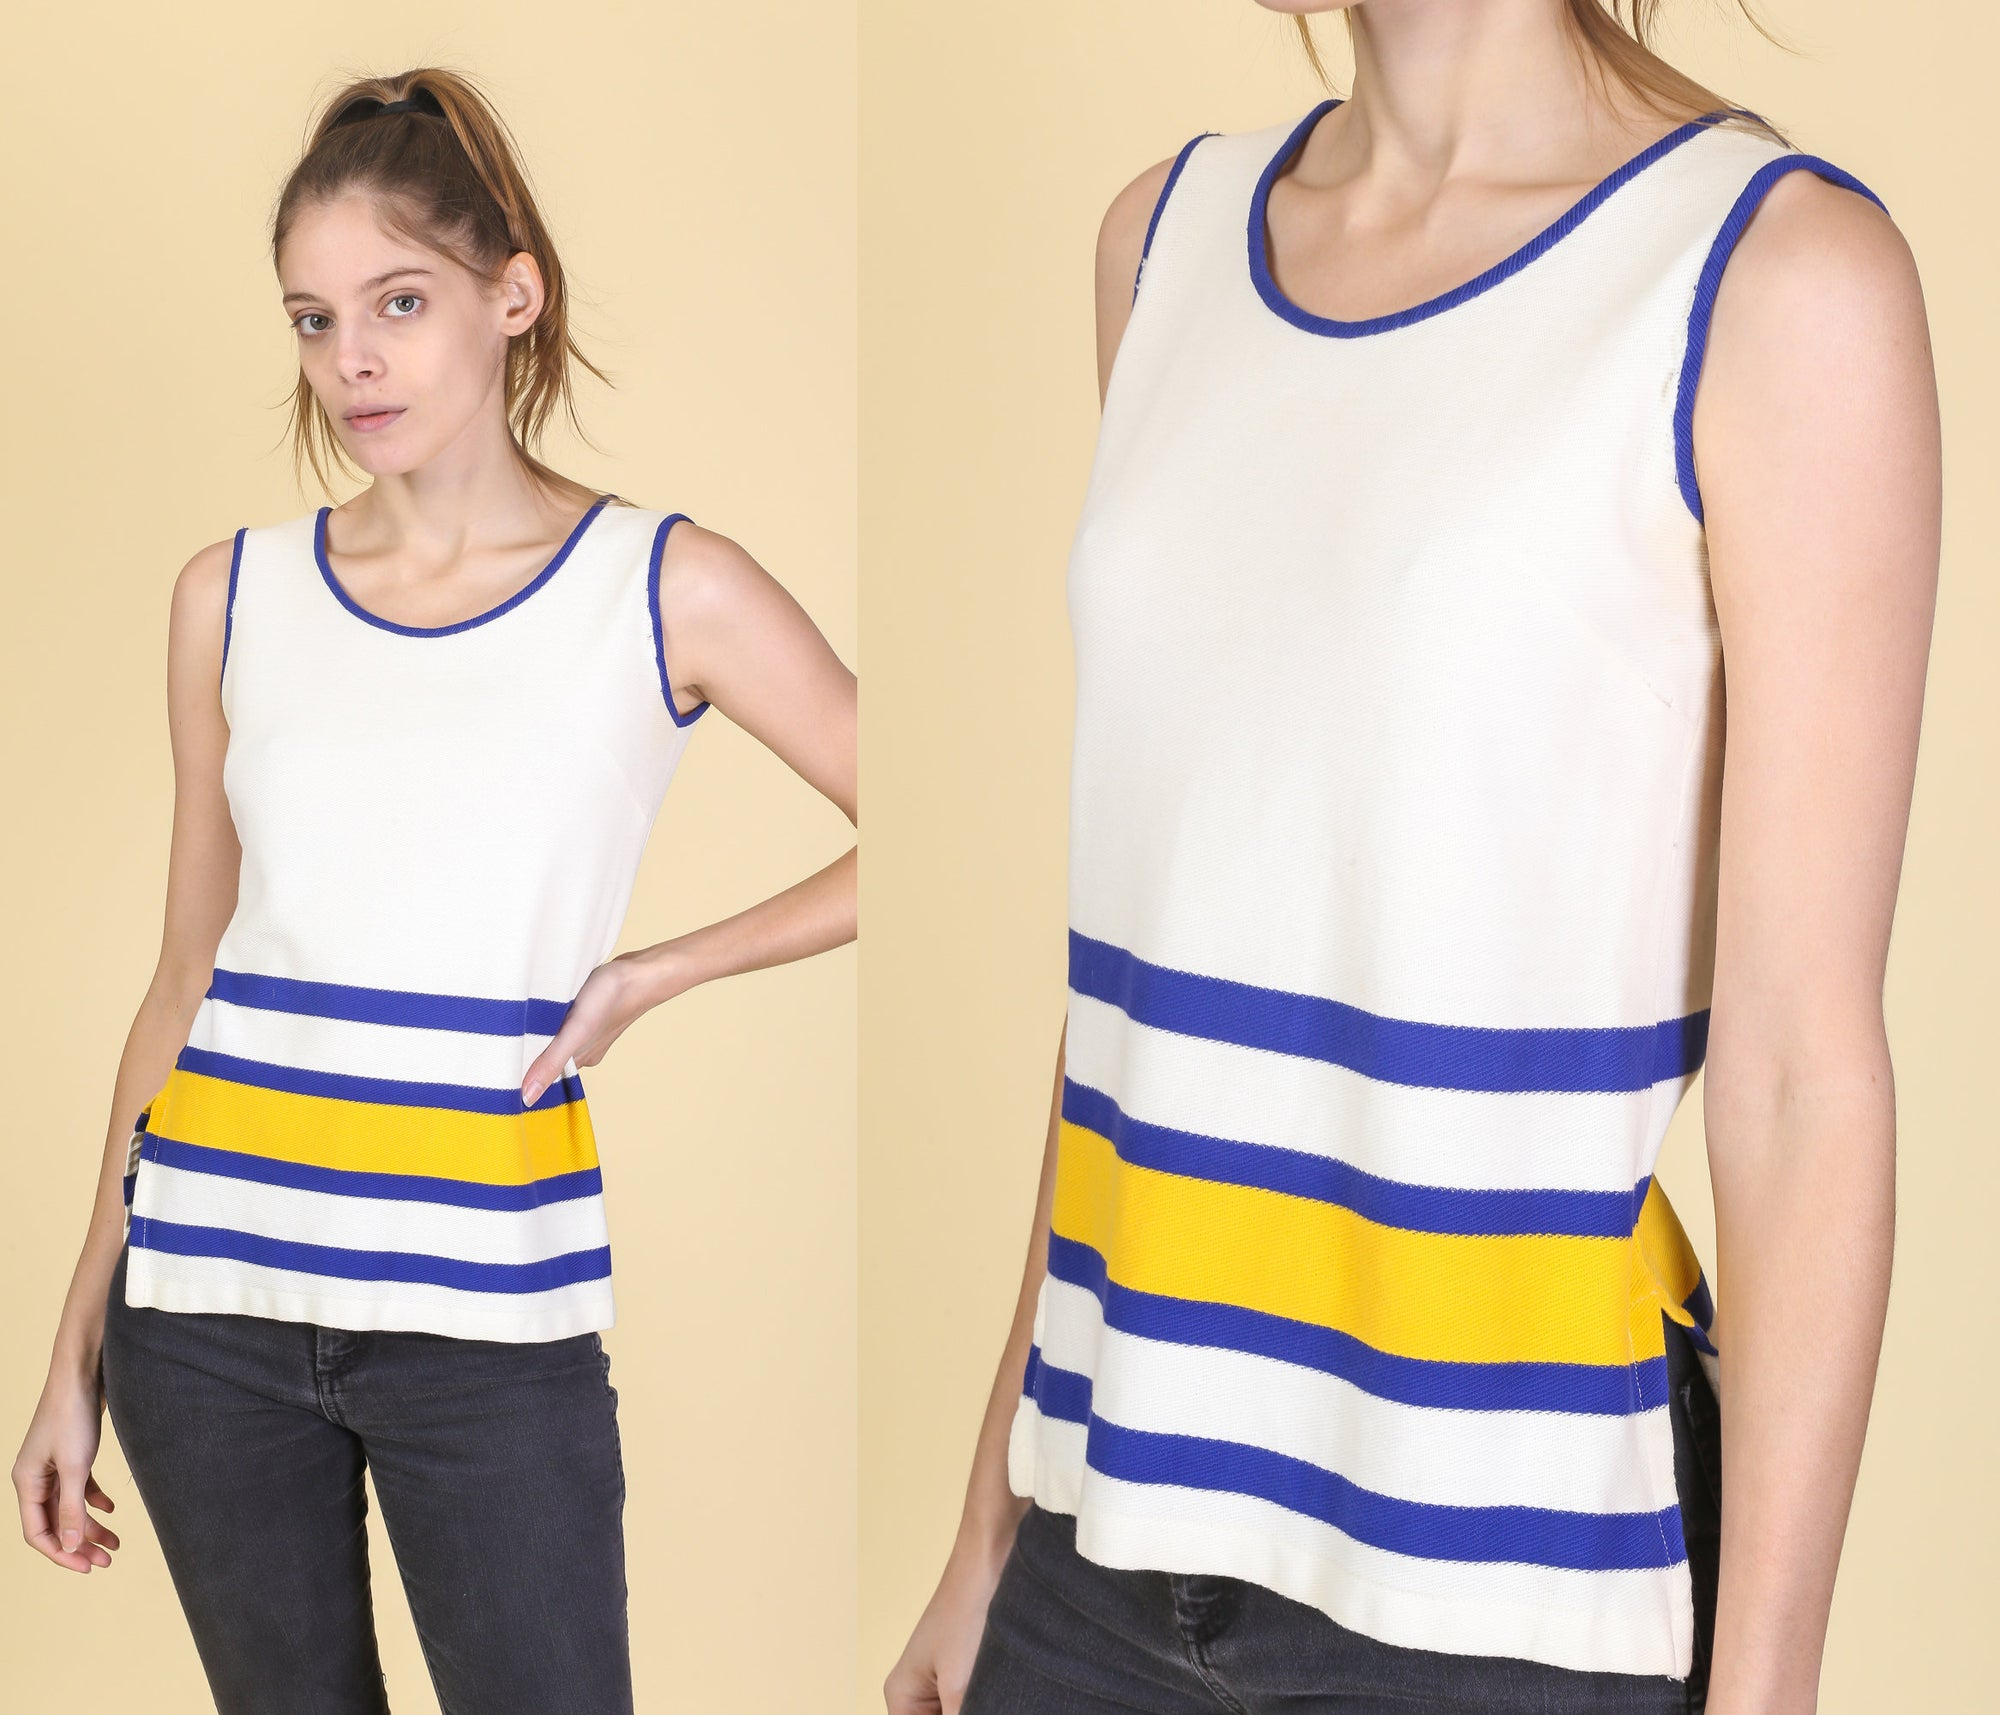 60s Jantzen Sportswear Tank Top - Small to Medium